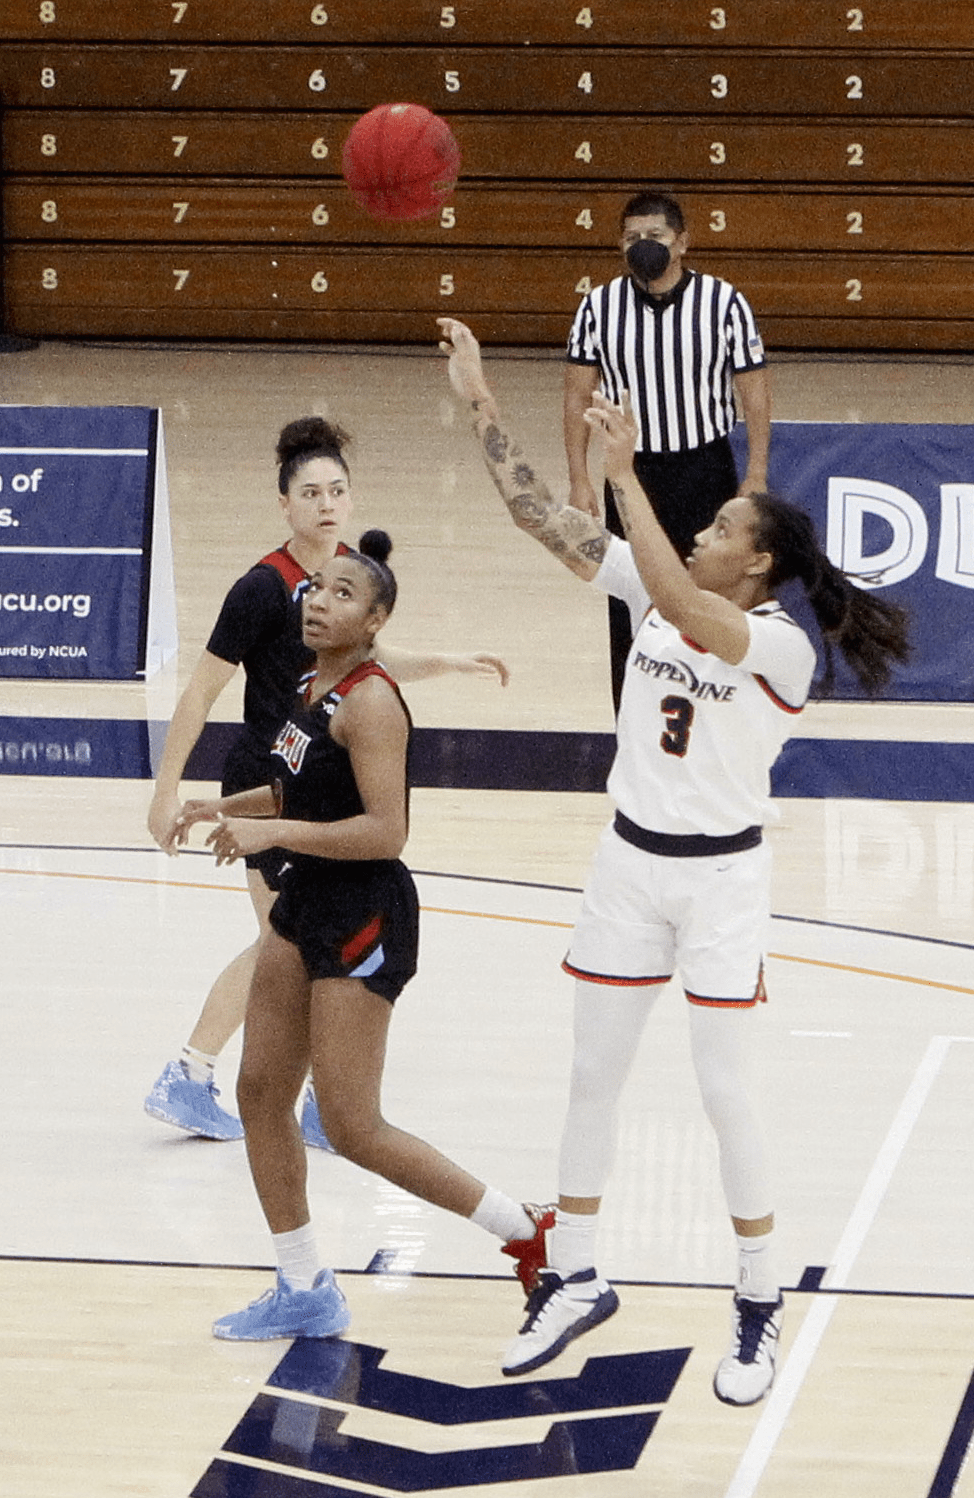 Redshirt sophomore guard Jayda Ruffus-Milner pulls up from midrange during Saturday's game against LMU. The Waves shot 37% from the field and crucially out-rebounded the Lions 45-30.